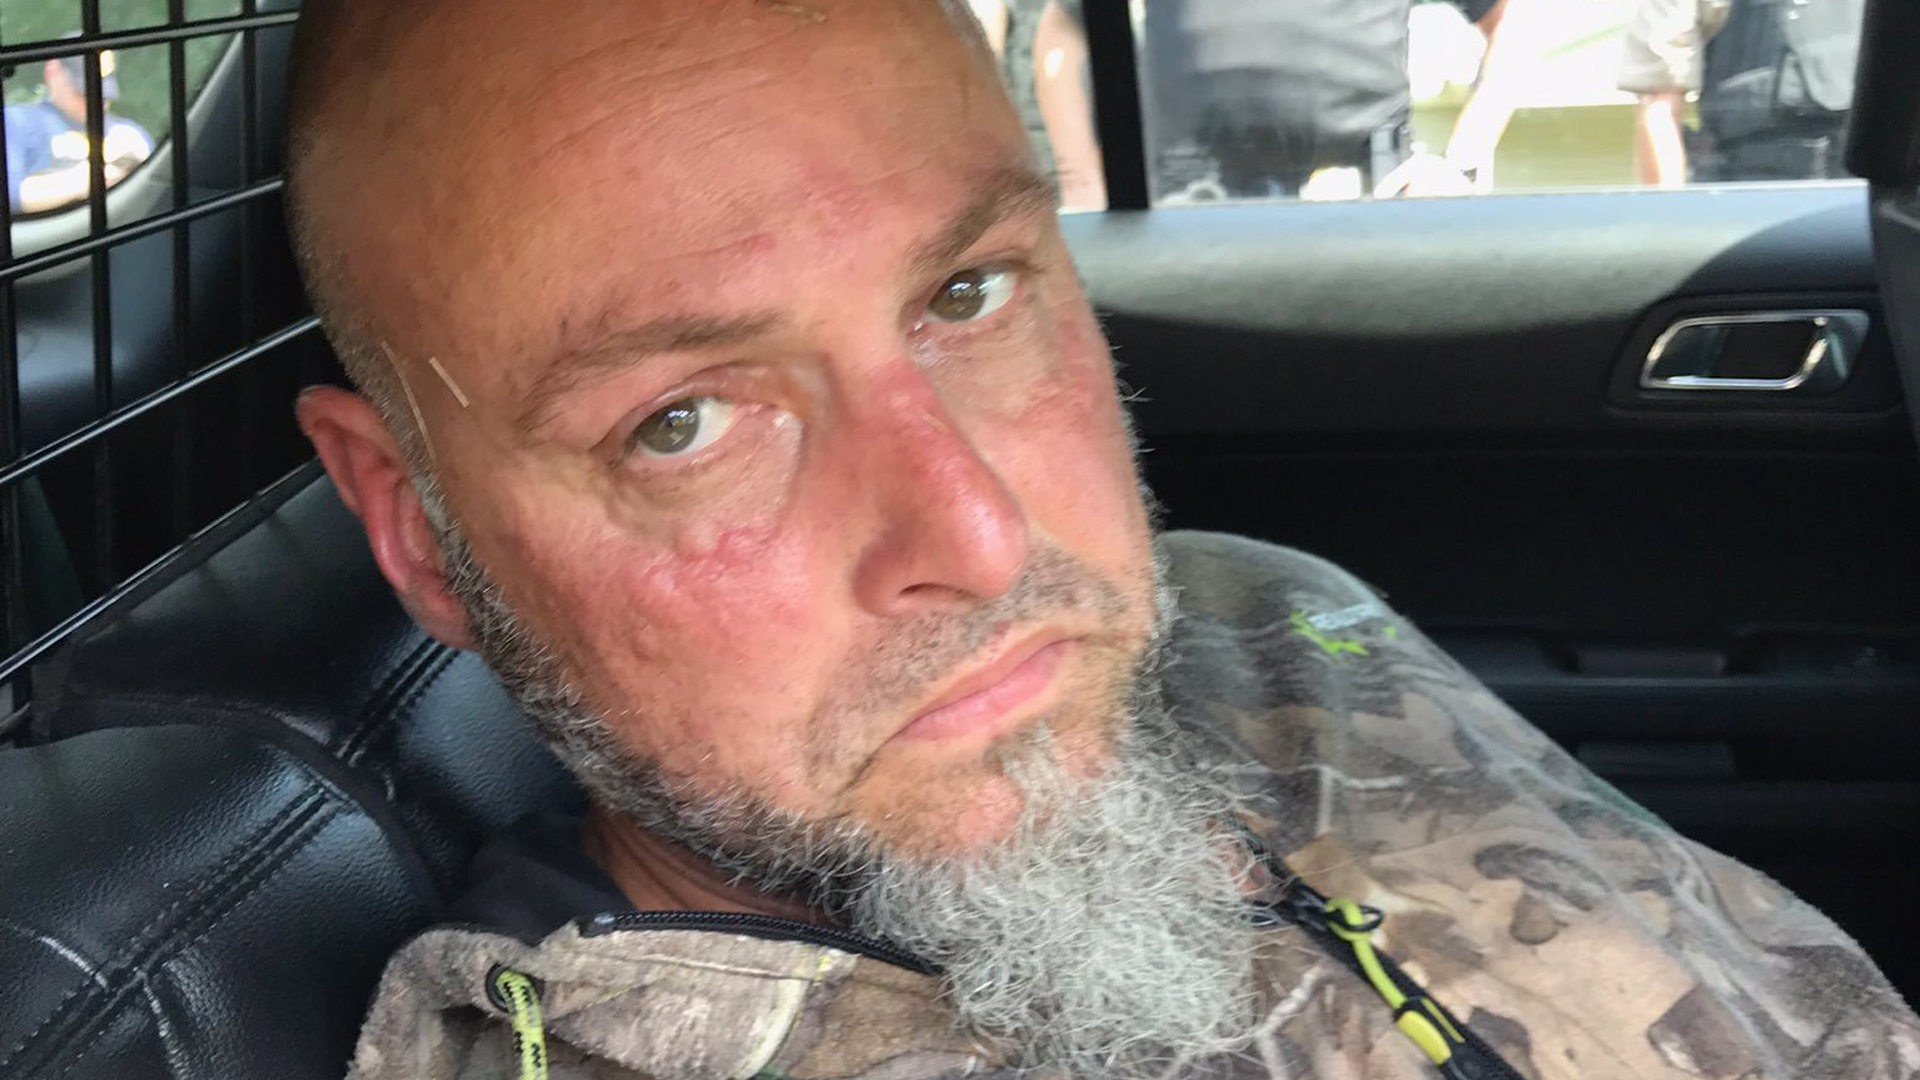 Curtis Ray Watson appears in a photo tweeted by the Tennessee Bureau of Investigation on Aug. 11, 2019.